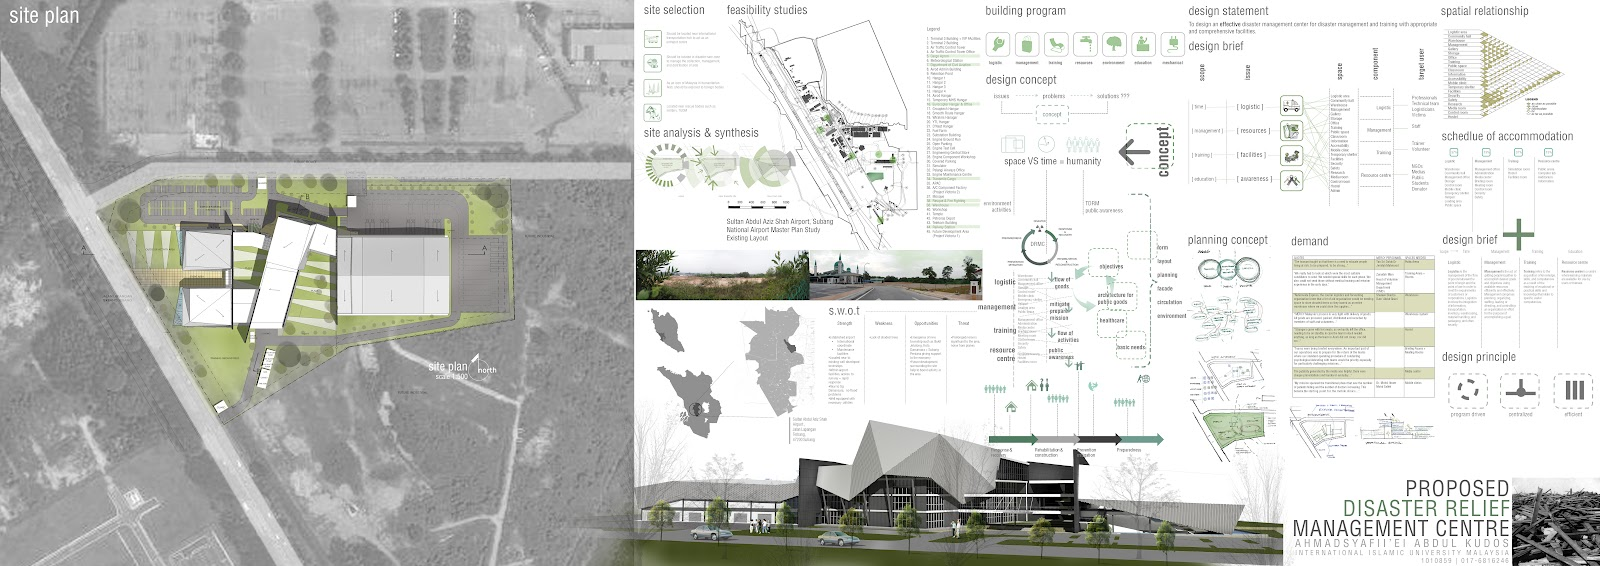 Architecture Design Thesis piei's portfolio: proposed disaster relief management centre